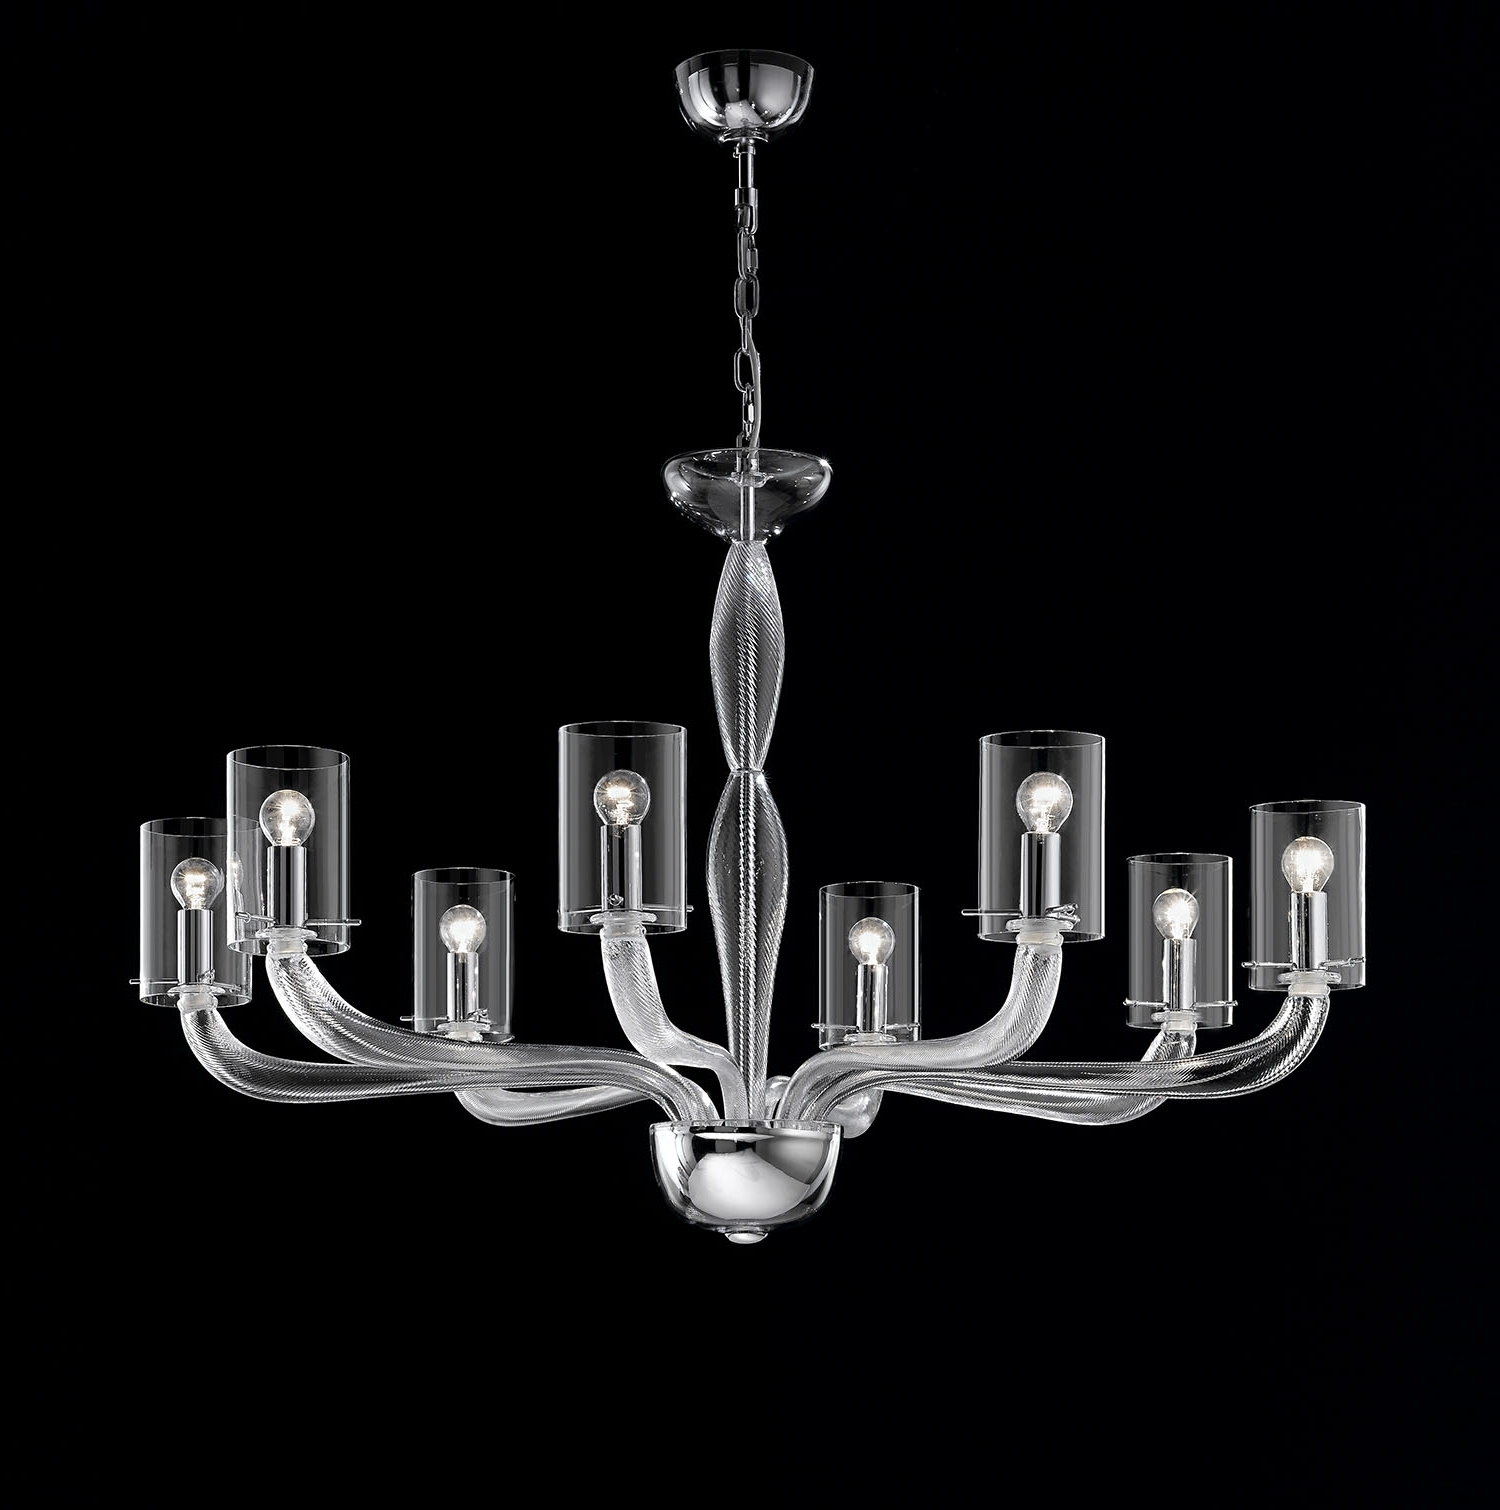 Italian Chandeliers Contemporary Regarding Newest Light : Modern Glass Chandelier Lighting Beautiful Italian (View 8 of 15)